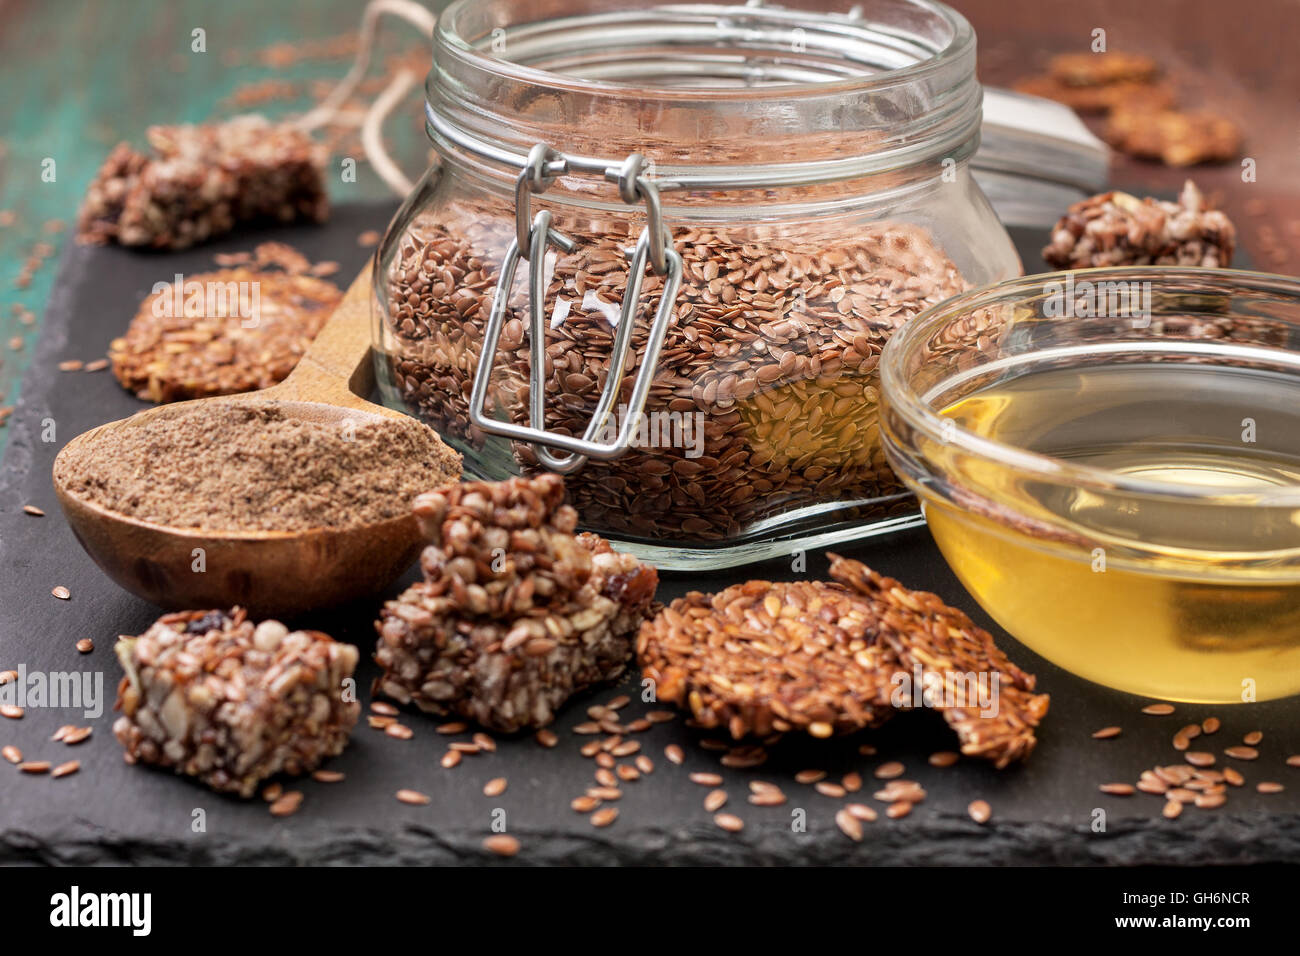 flax seeds and products thereof: linseed oil, flax flour, energy bars and crackers from flax seeds on a dark a stony - Stock Image